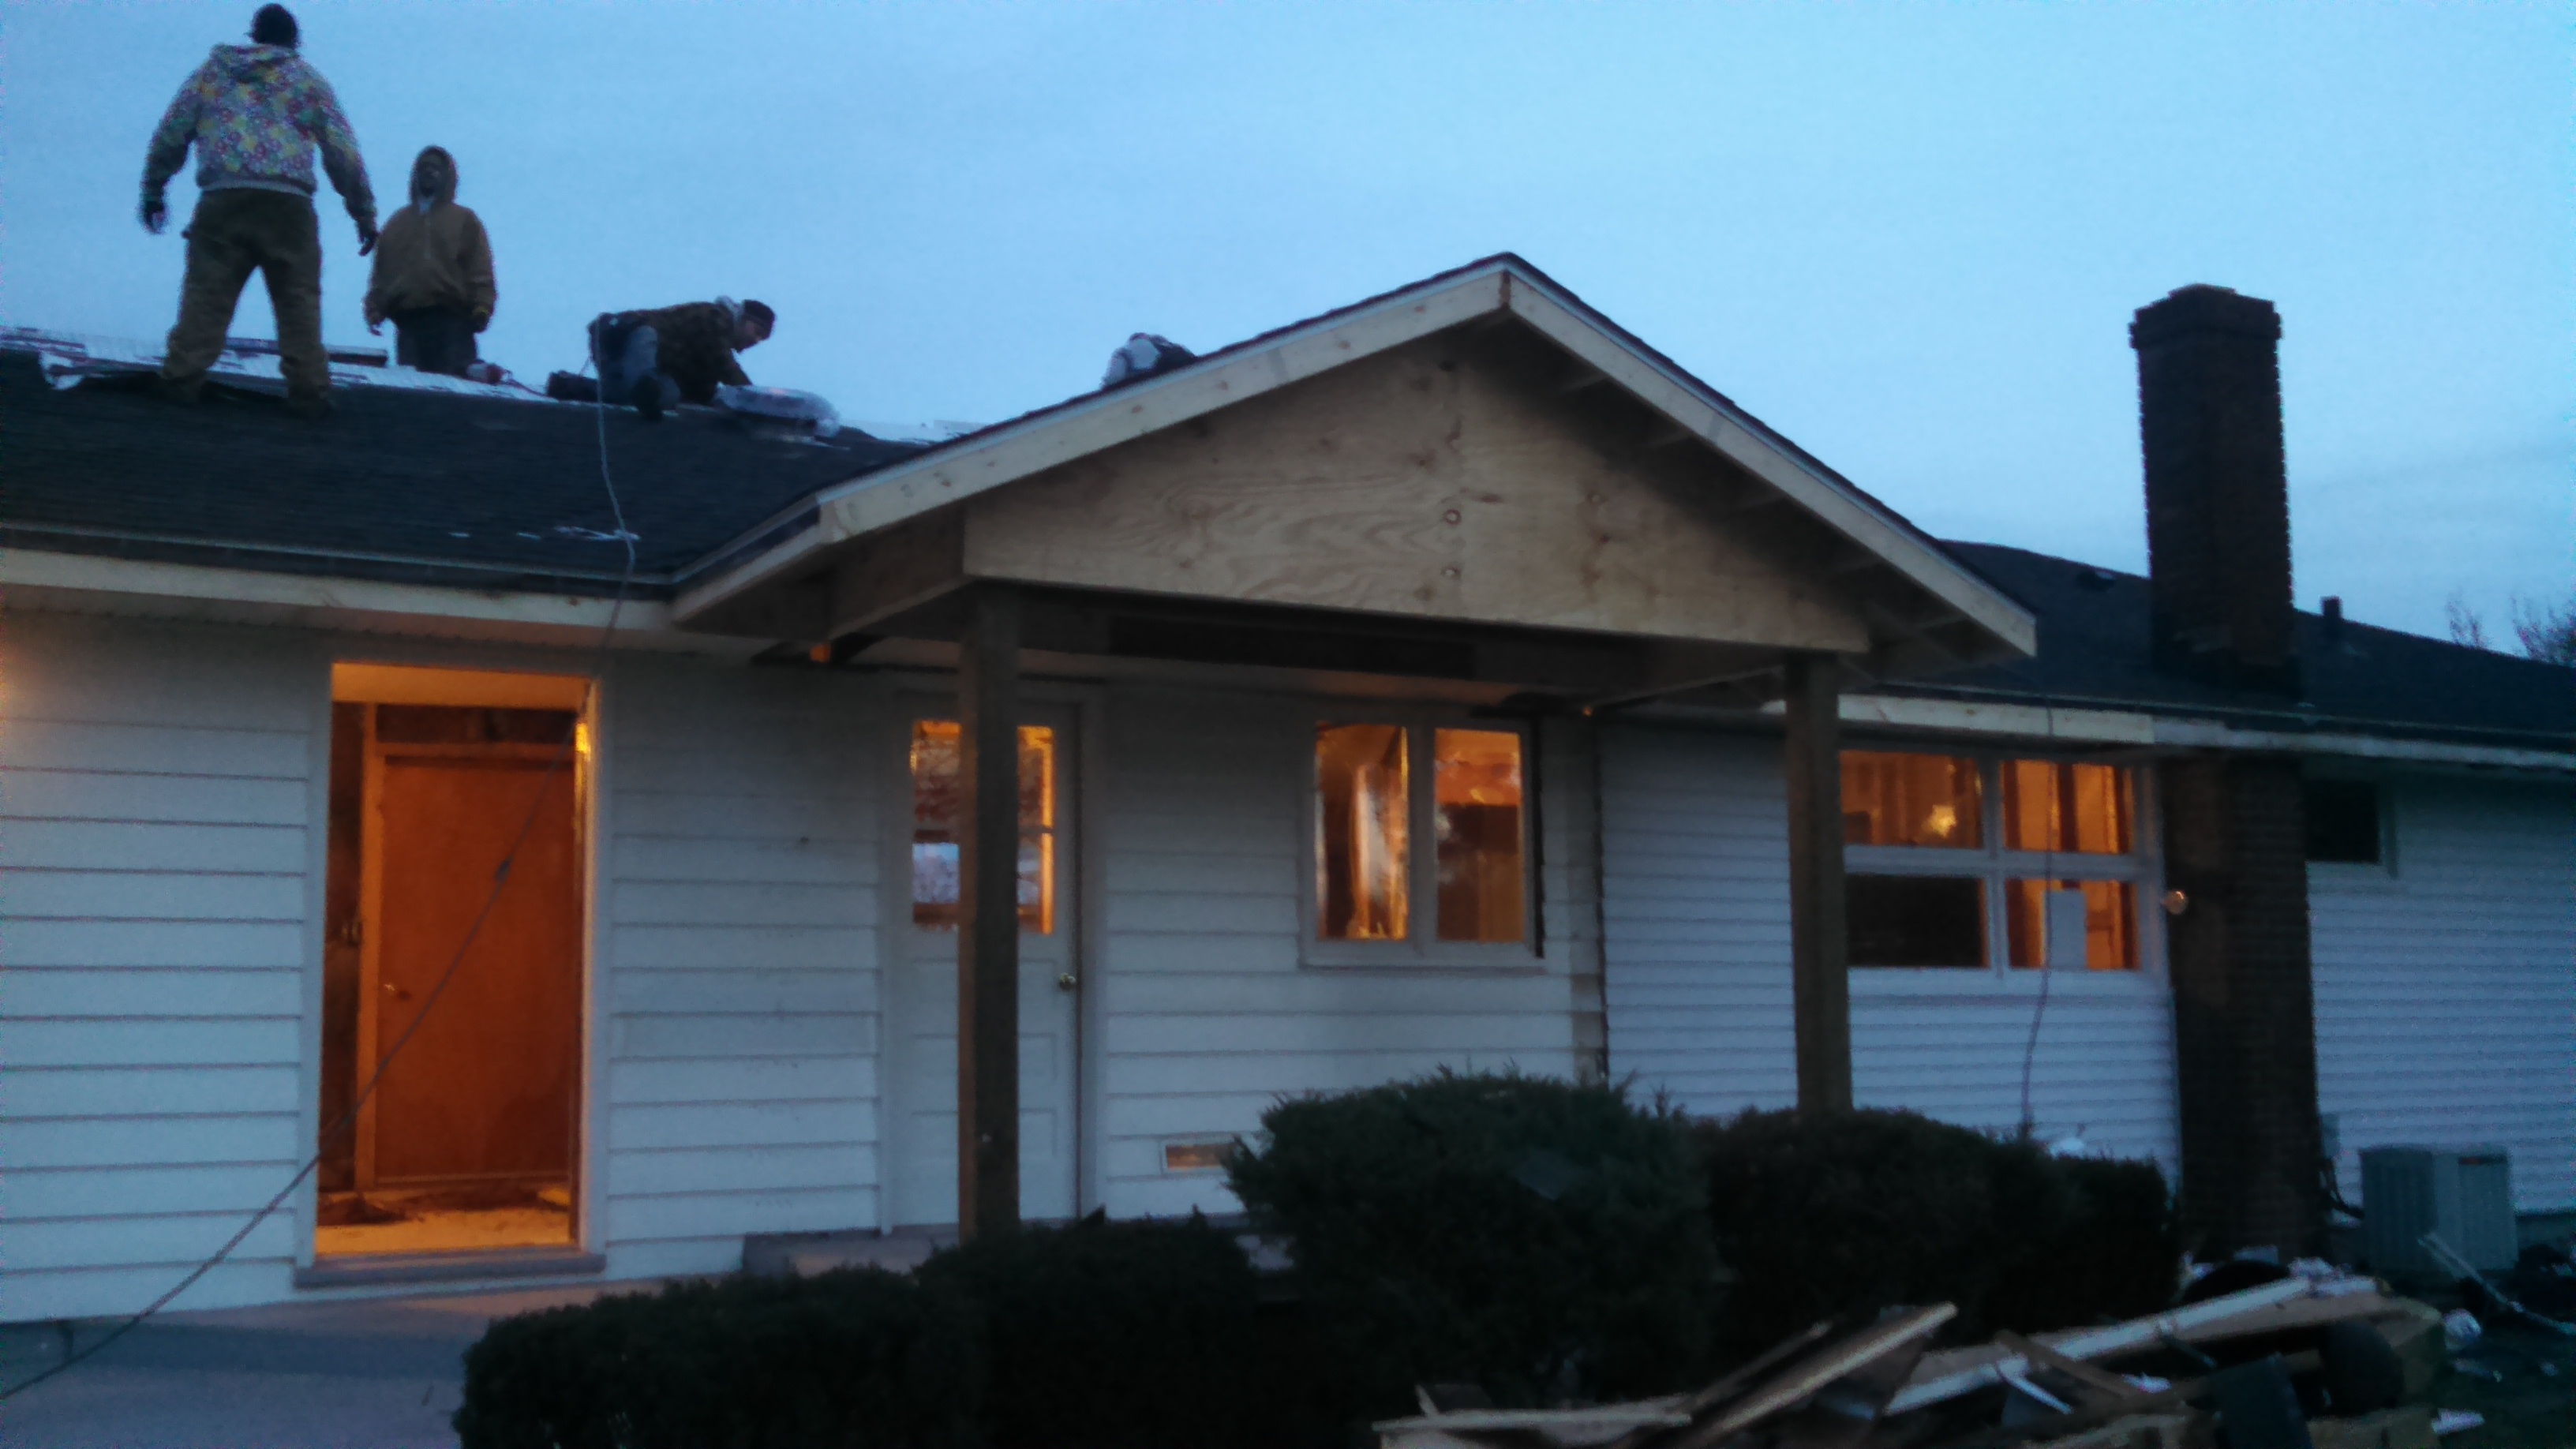 Finished roofing on gable